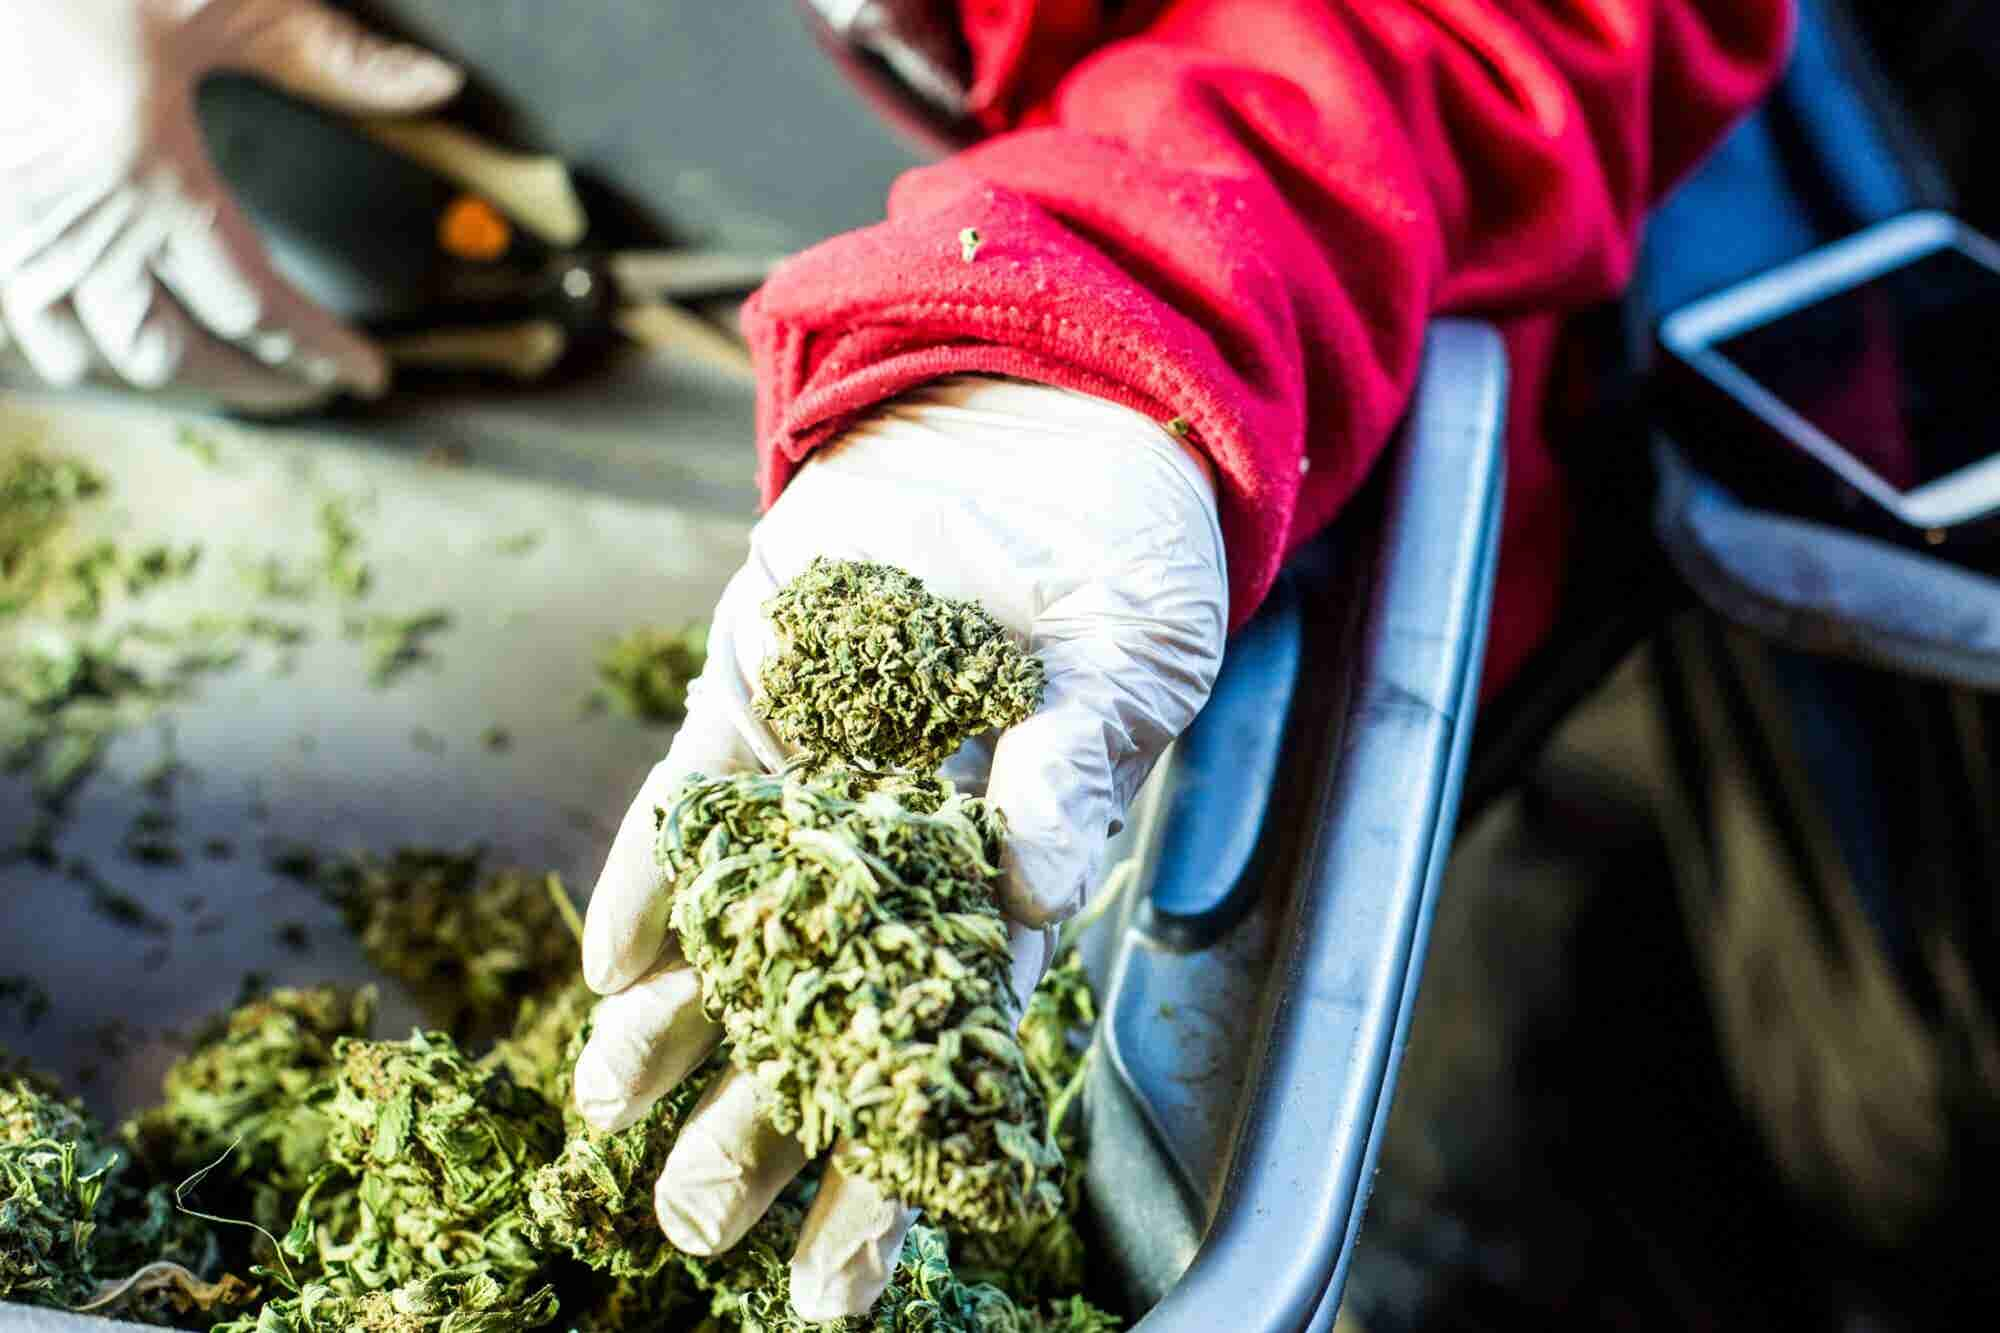 Licensing Snafu Could Cost California Cannabis Growers Thousands in Lo...